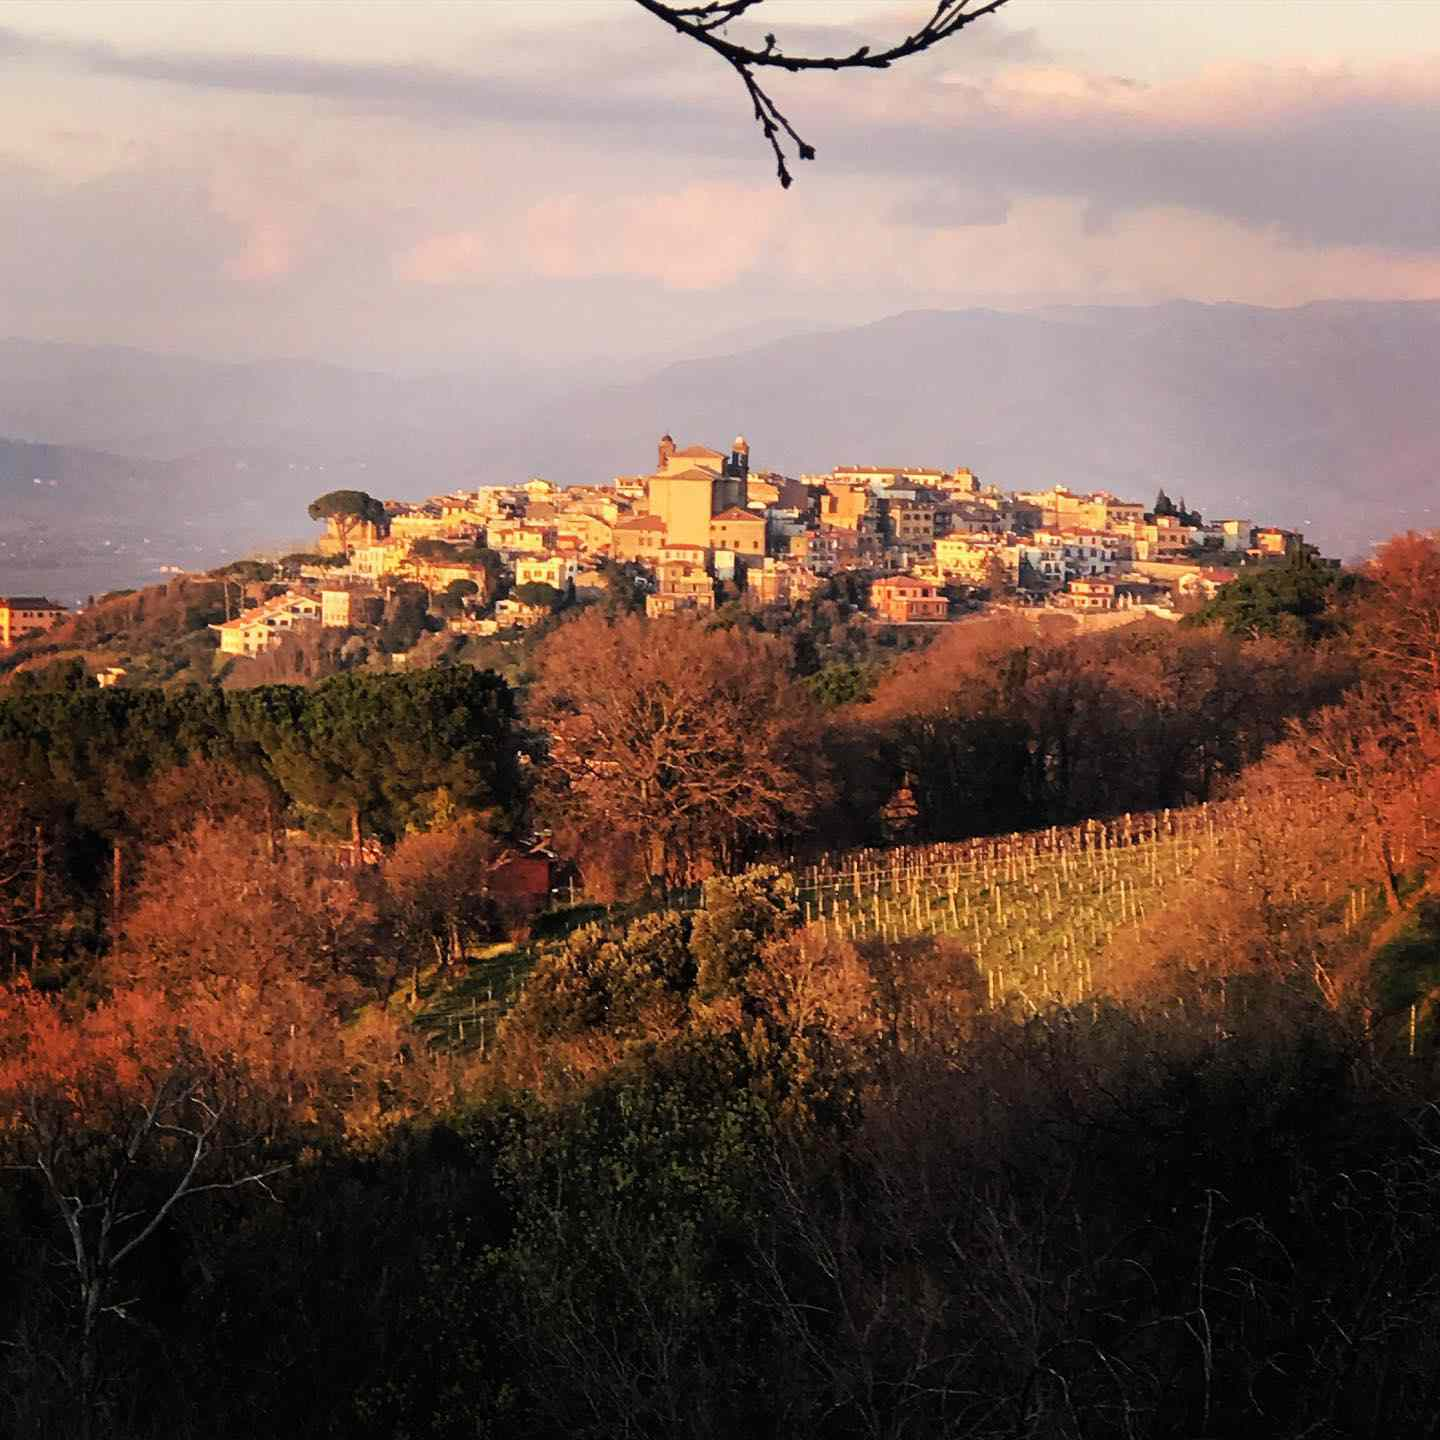 A view of Frascati